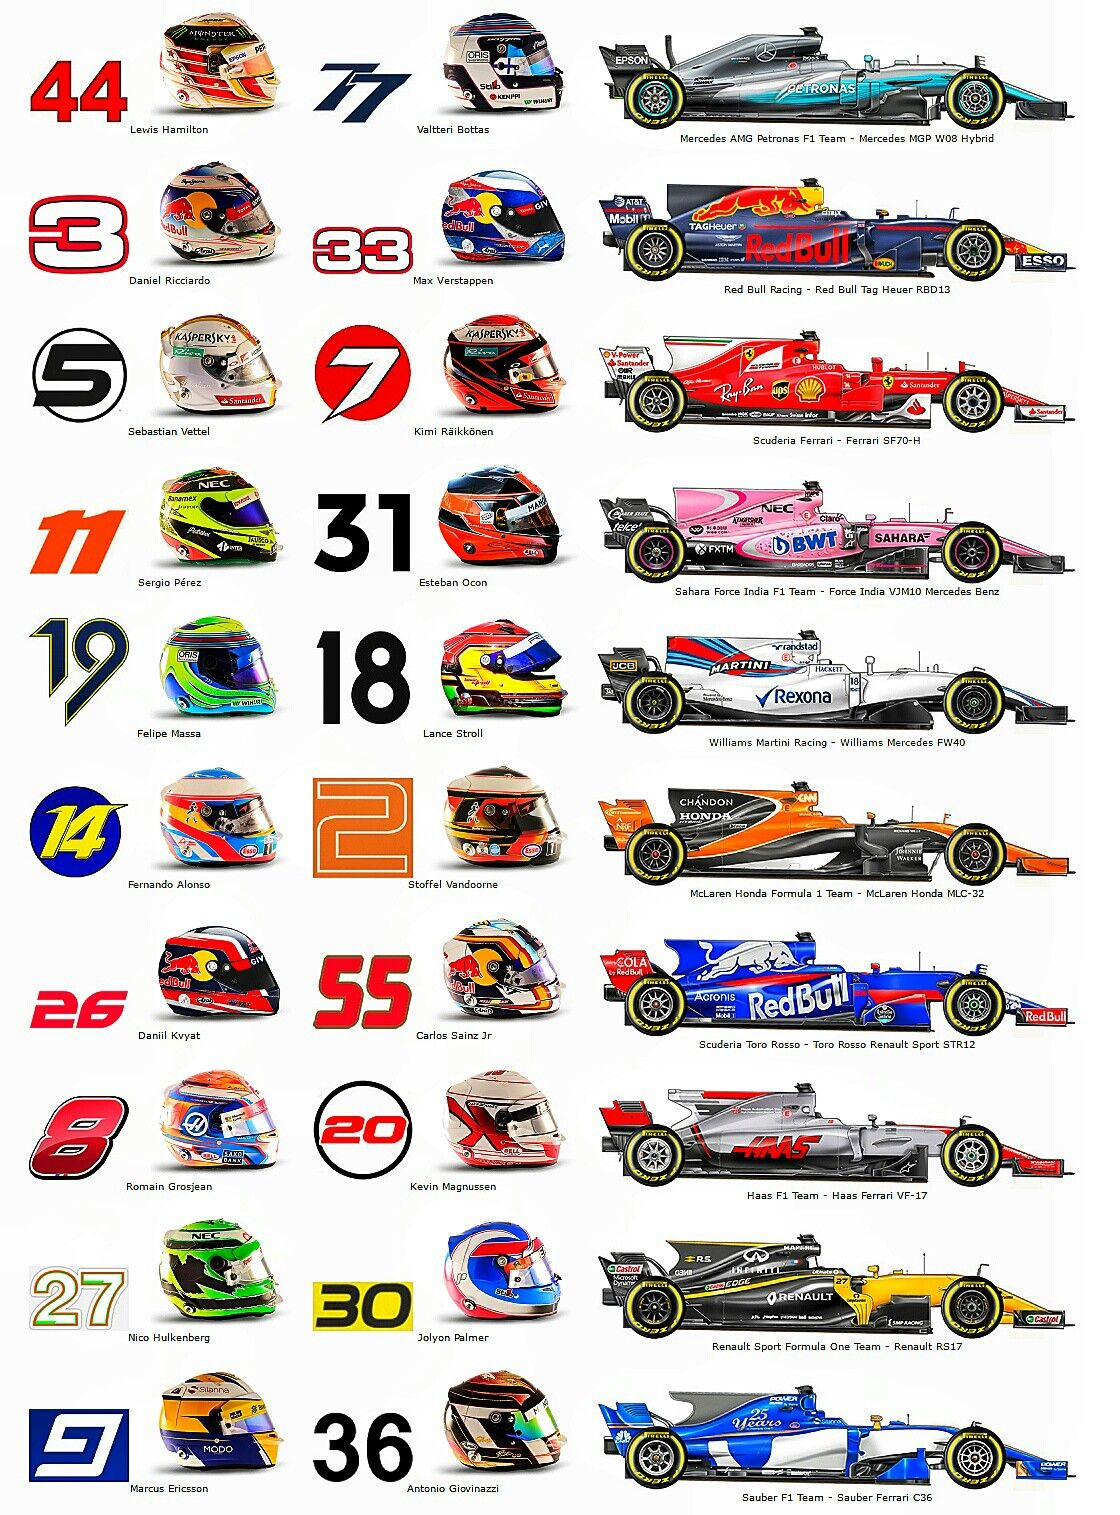 2017 F1 spotter's guide - click to enlarge!